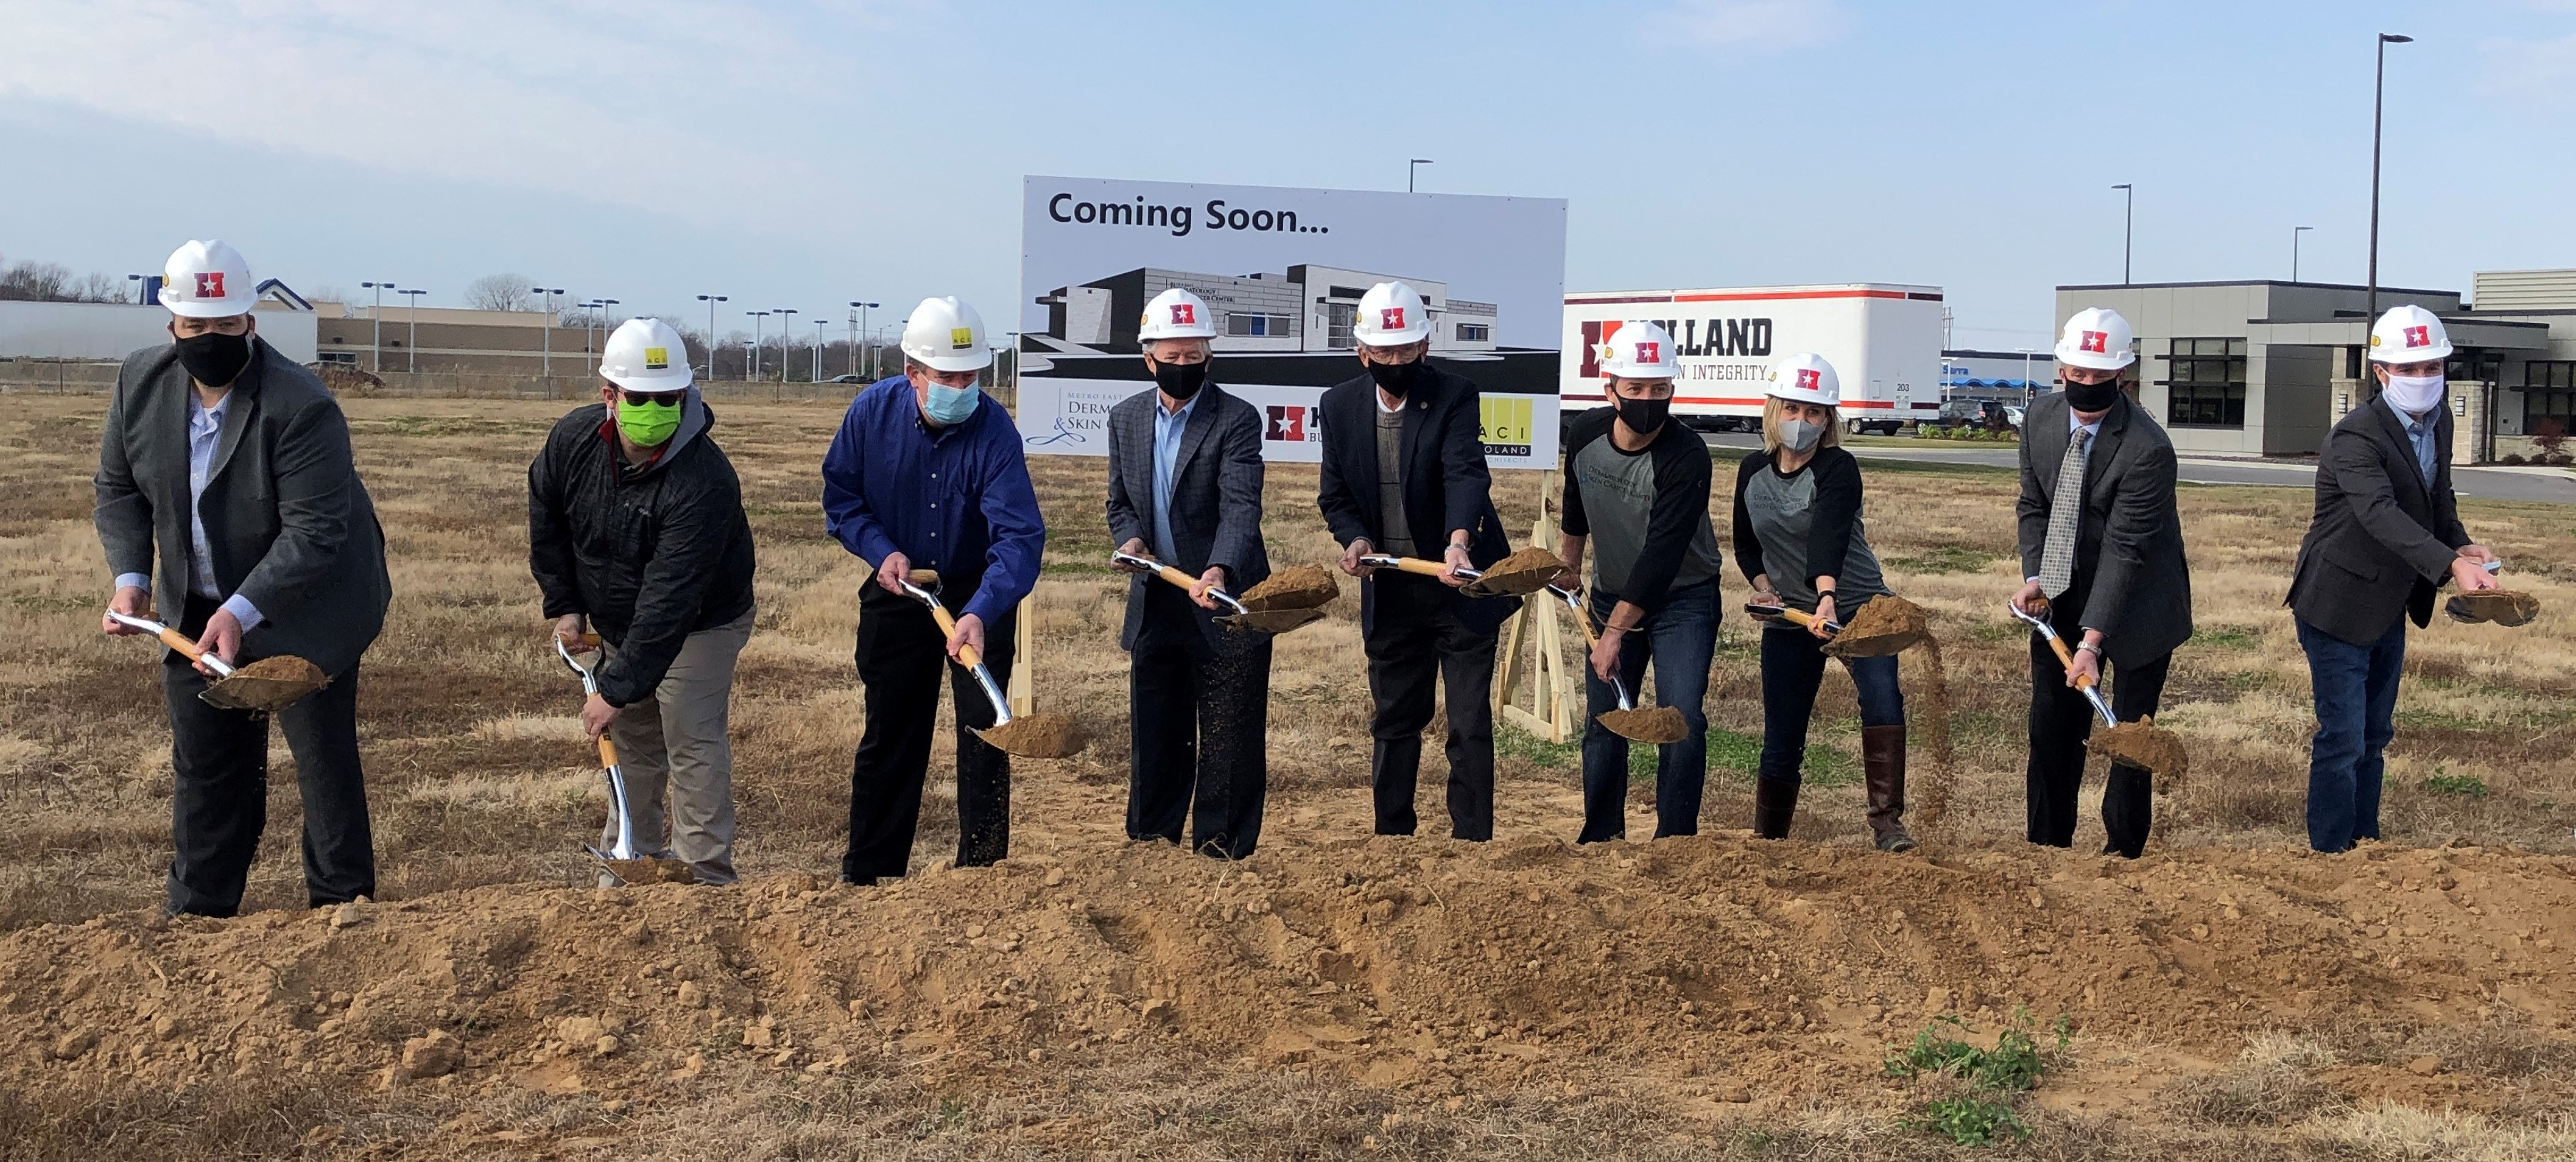 Metro East Derm Ground Breaking